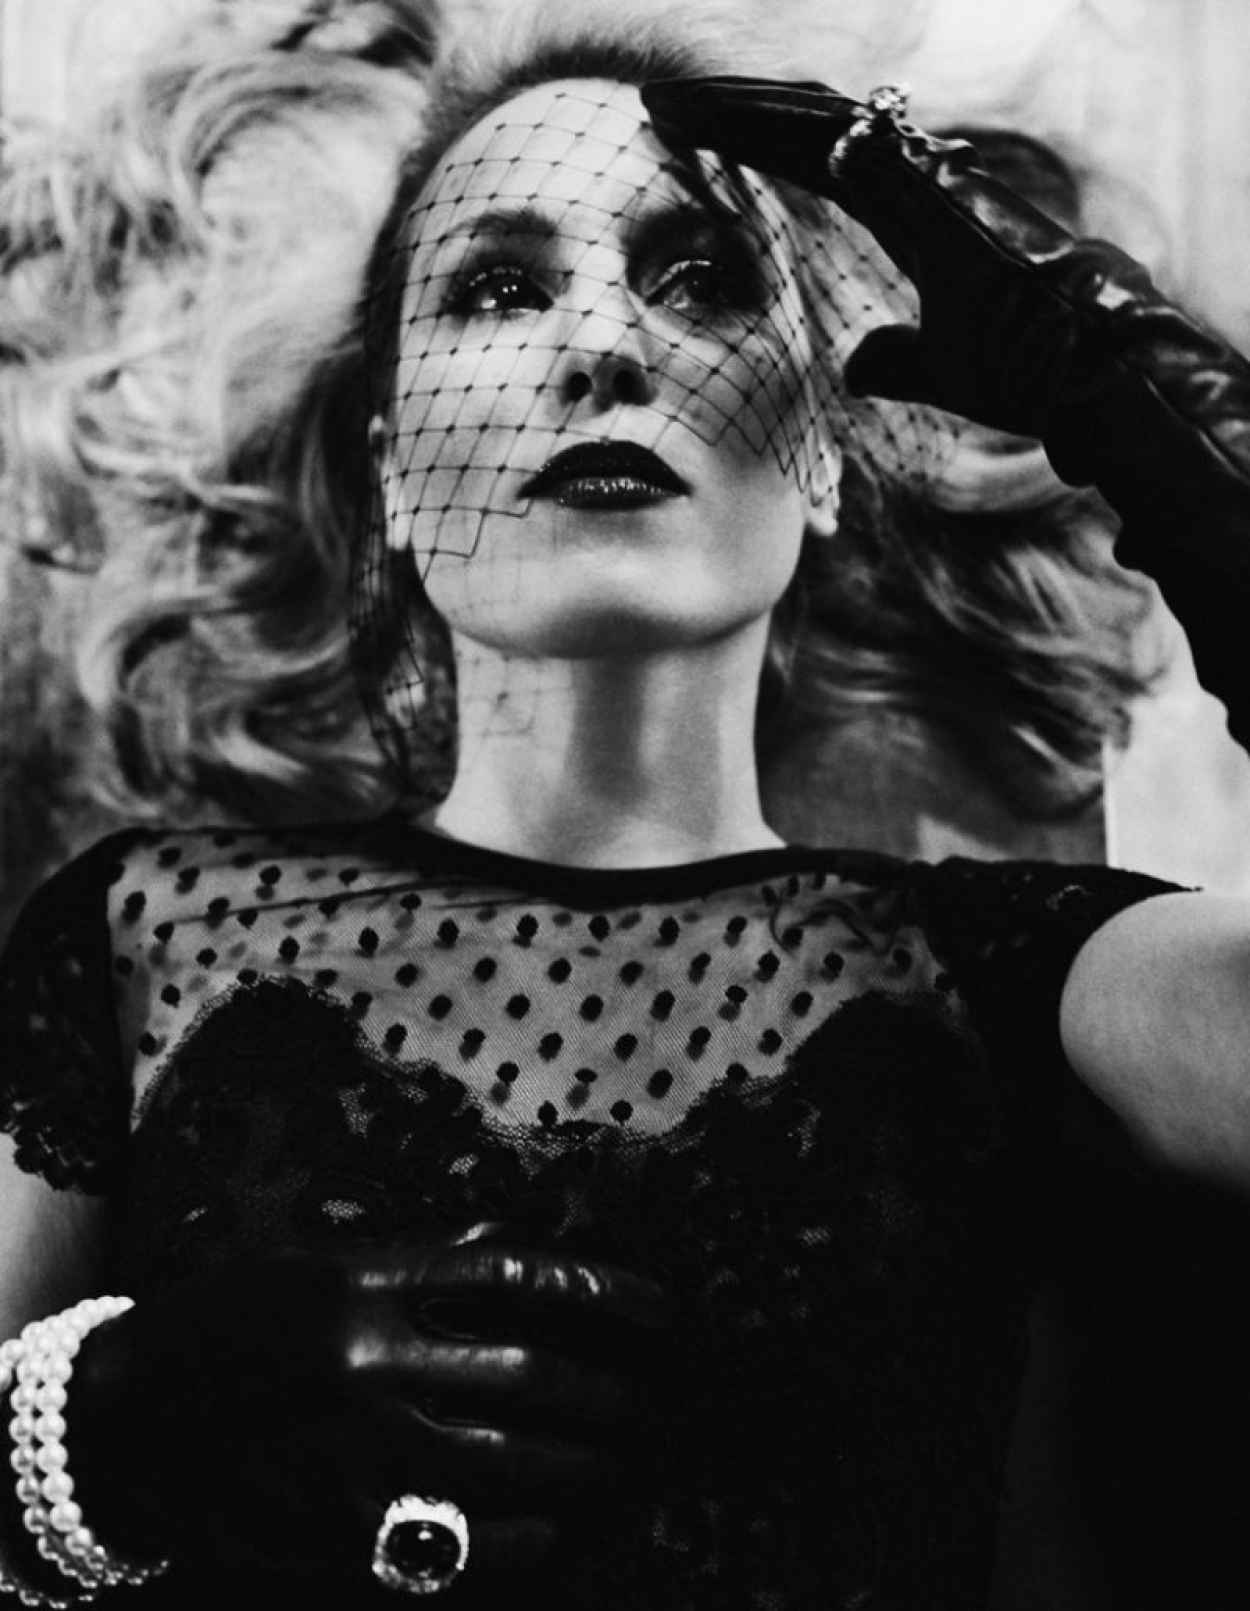 Noomi Rapace Photoshoot by Viktor Flume - Year 2015-1